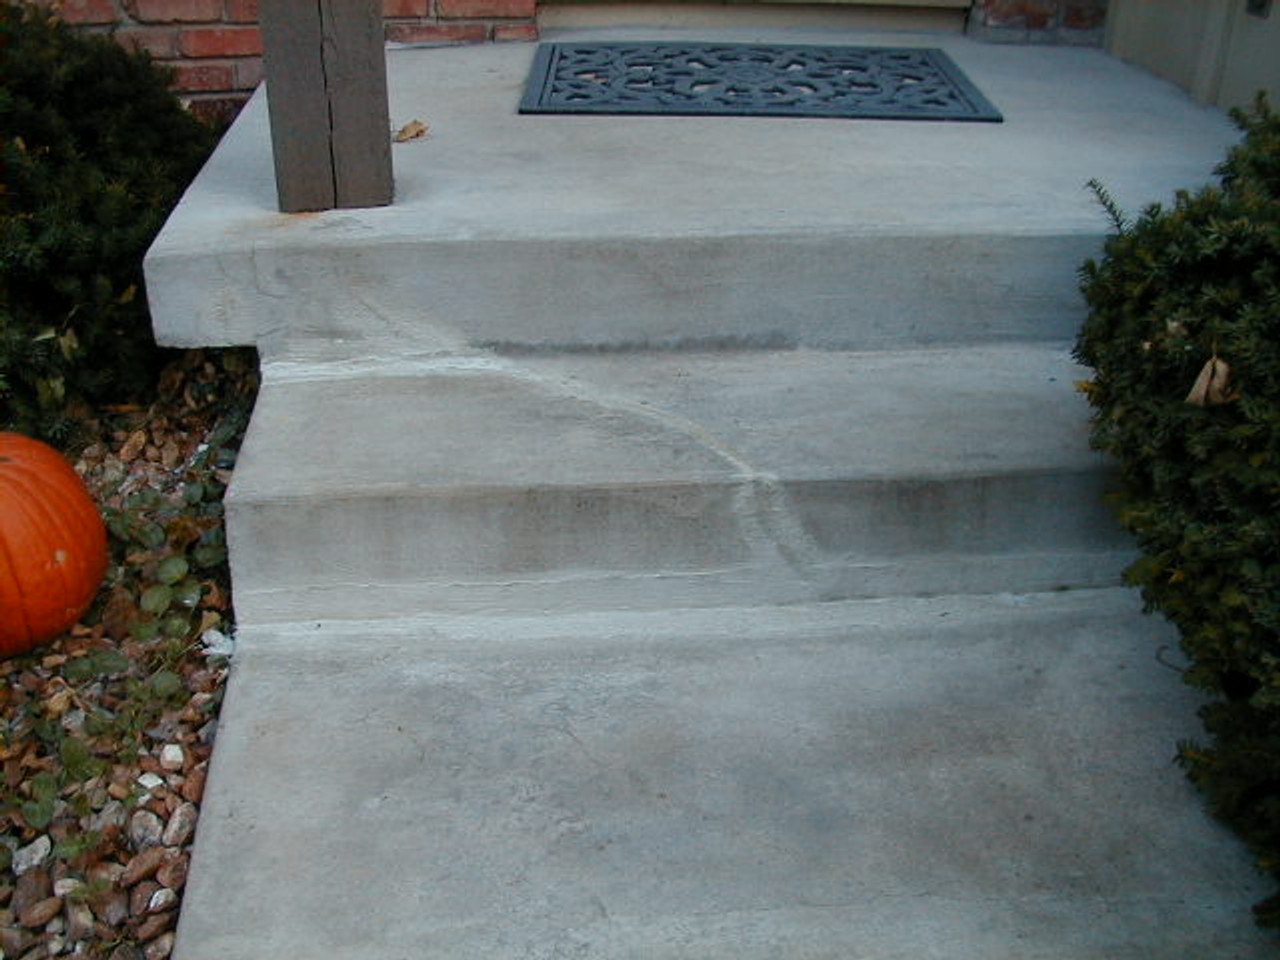 Typical crack repaired with a stiff concrete repair material.  This type of  crack repair will fail at first movement of the concrete step.